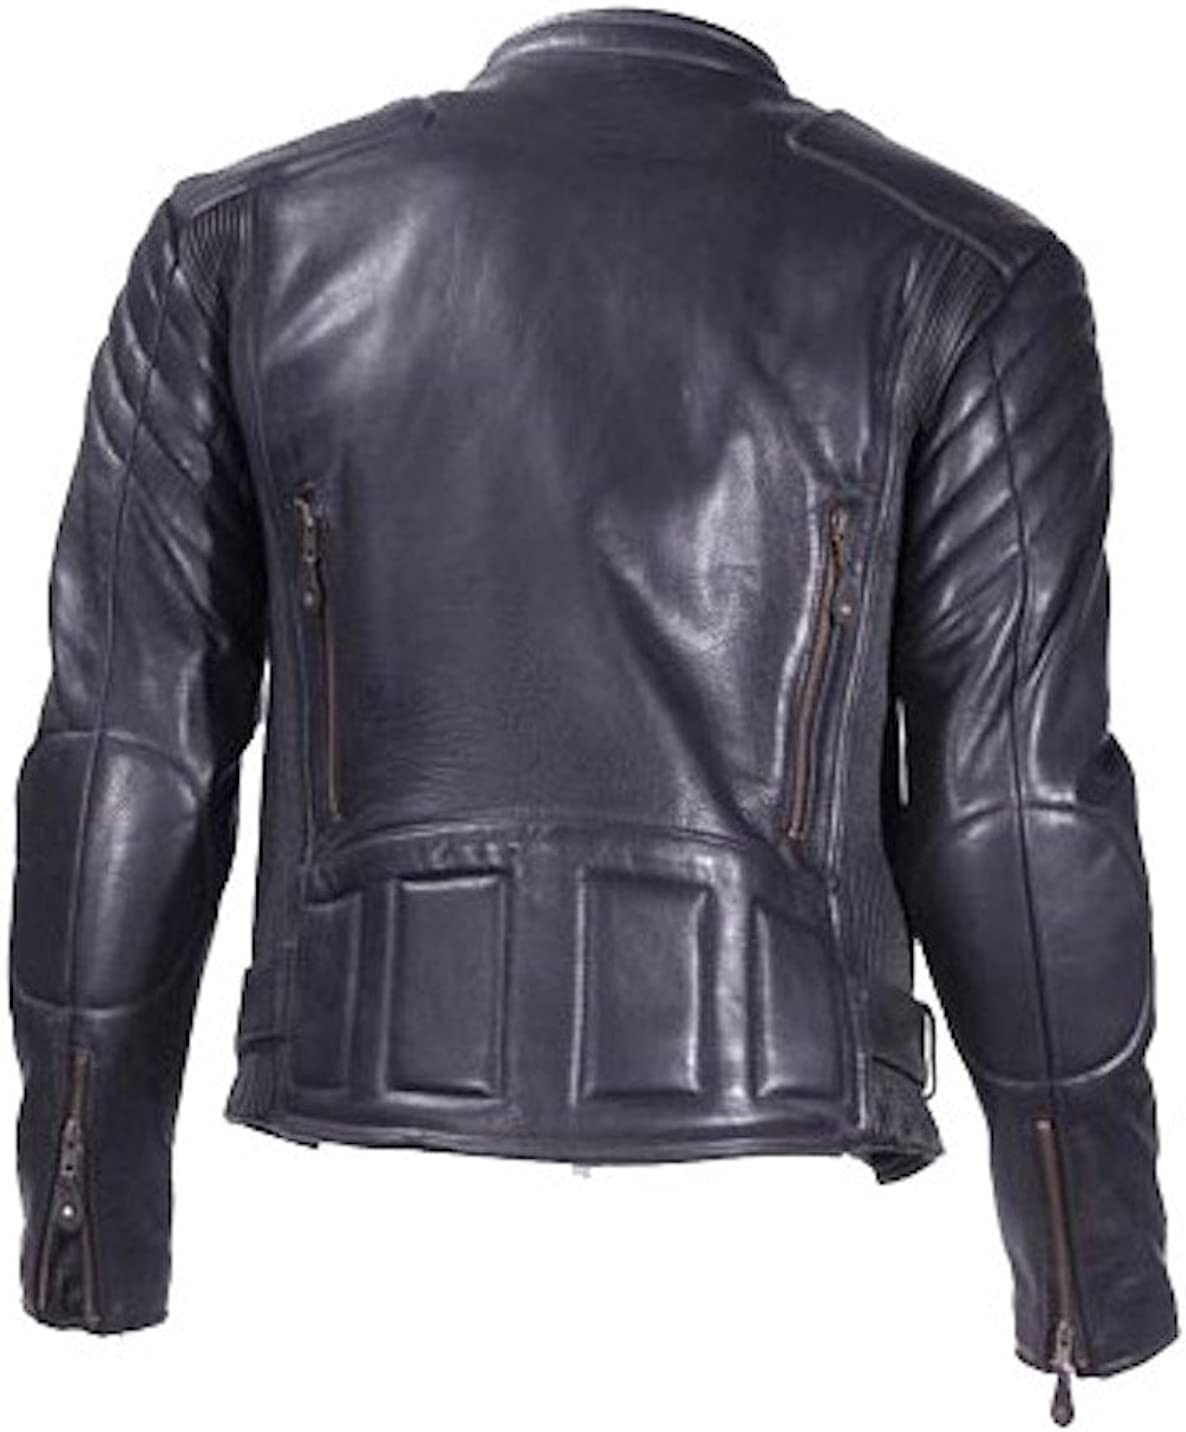 Ultimate Leather Apparel Naked Leather Padded Motorcycle Racing Jacket with Air Vents